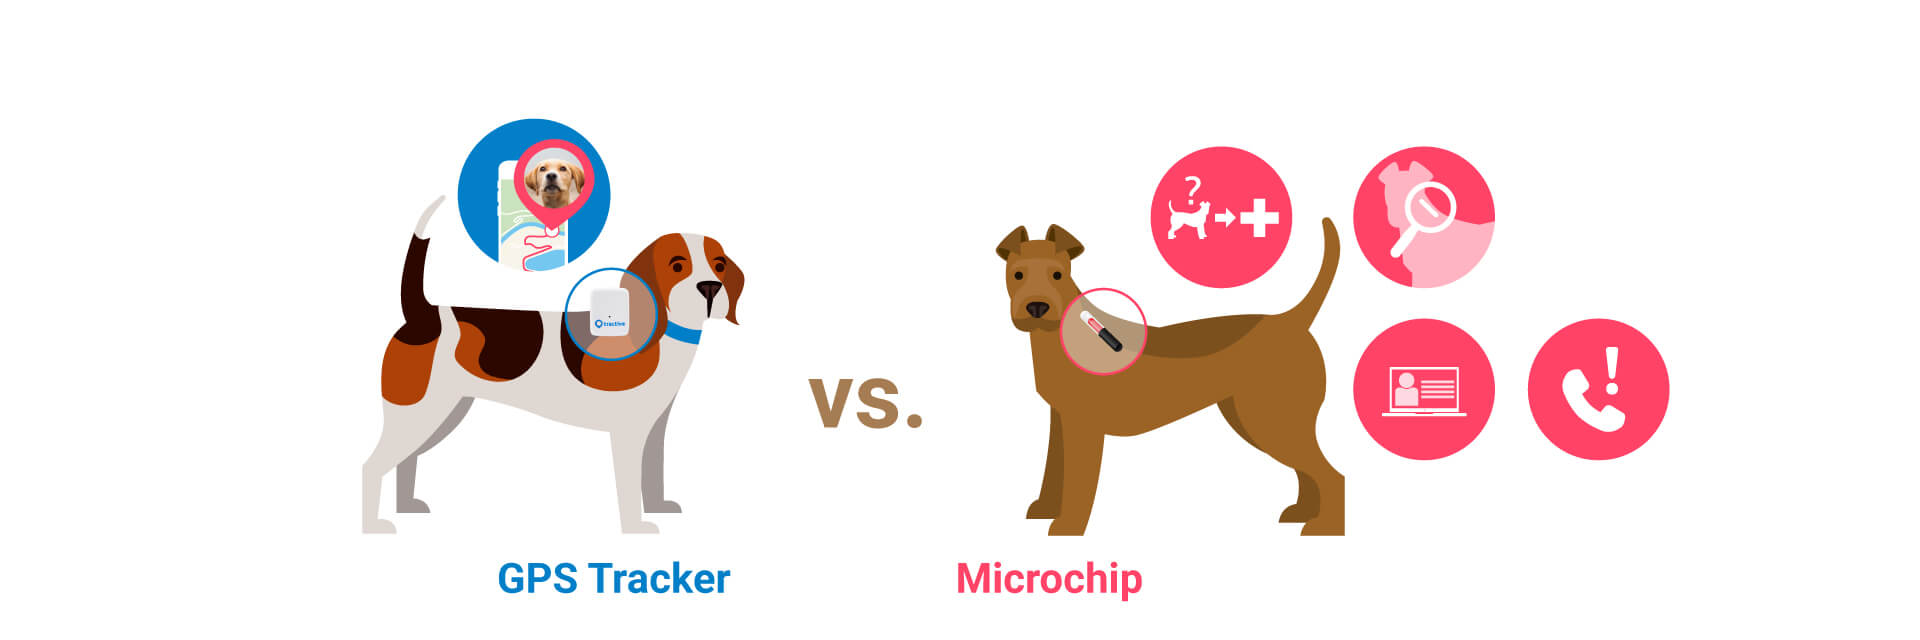 gps tracker vs mircochip